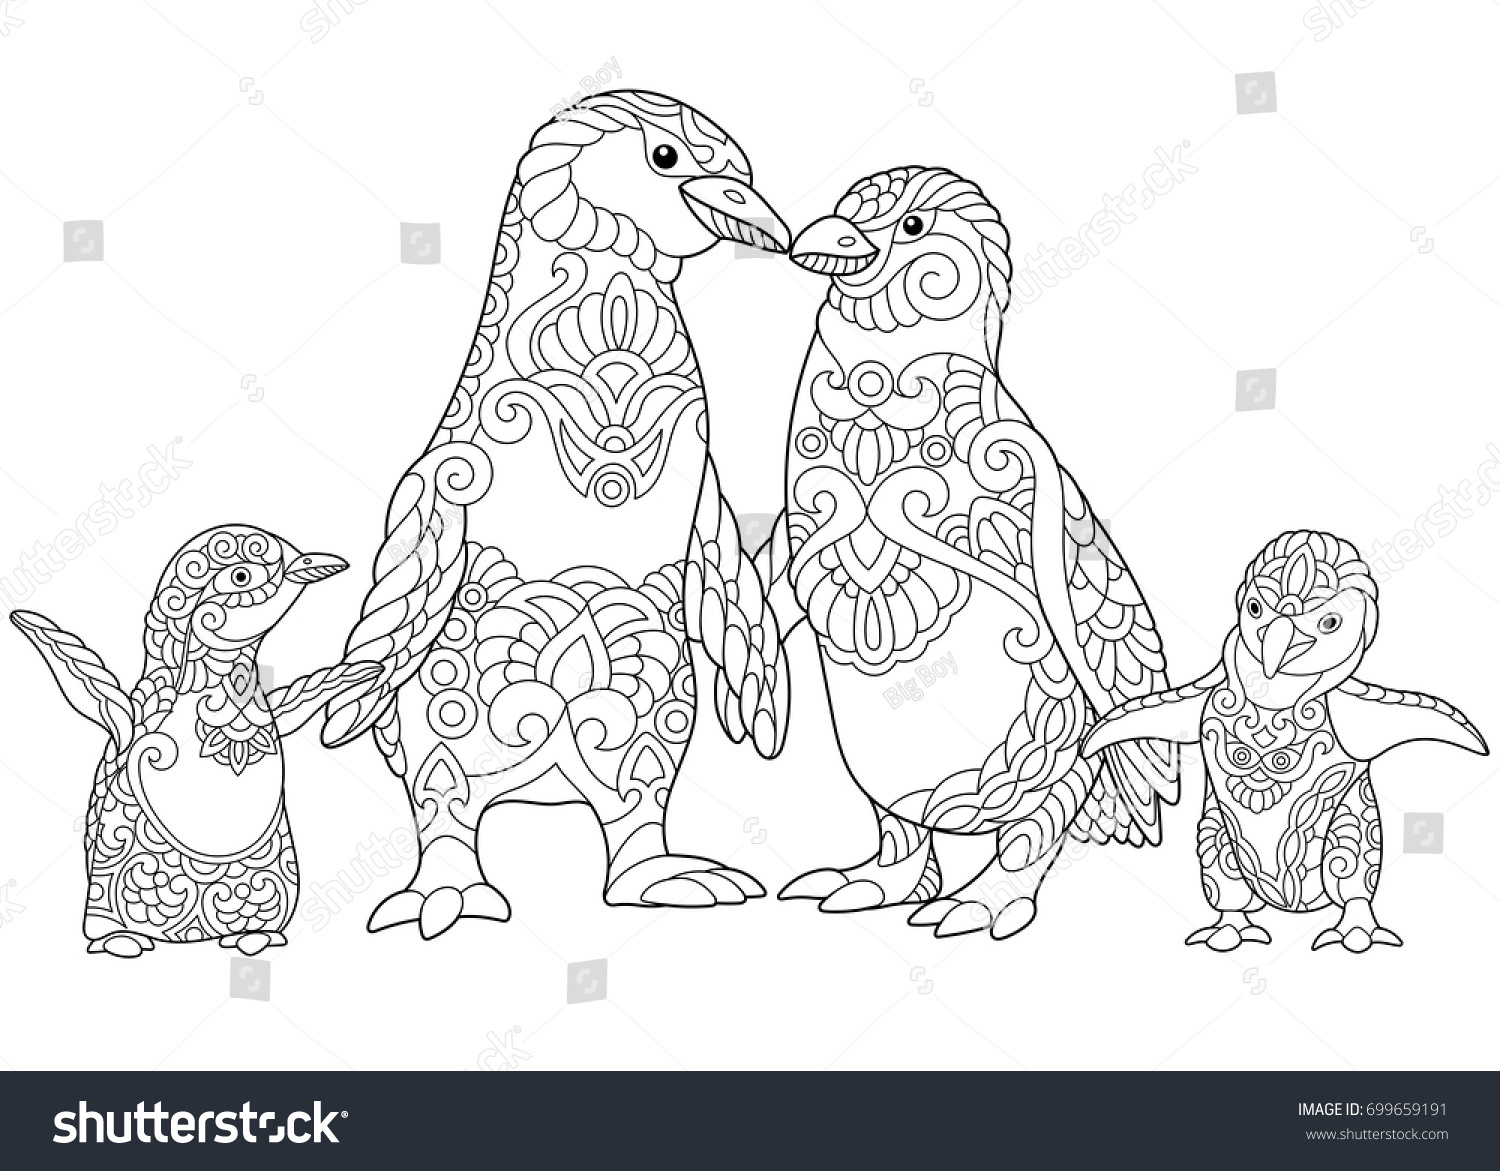 coloring page emperor penguins family isolated stock vector